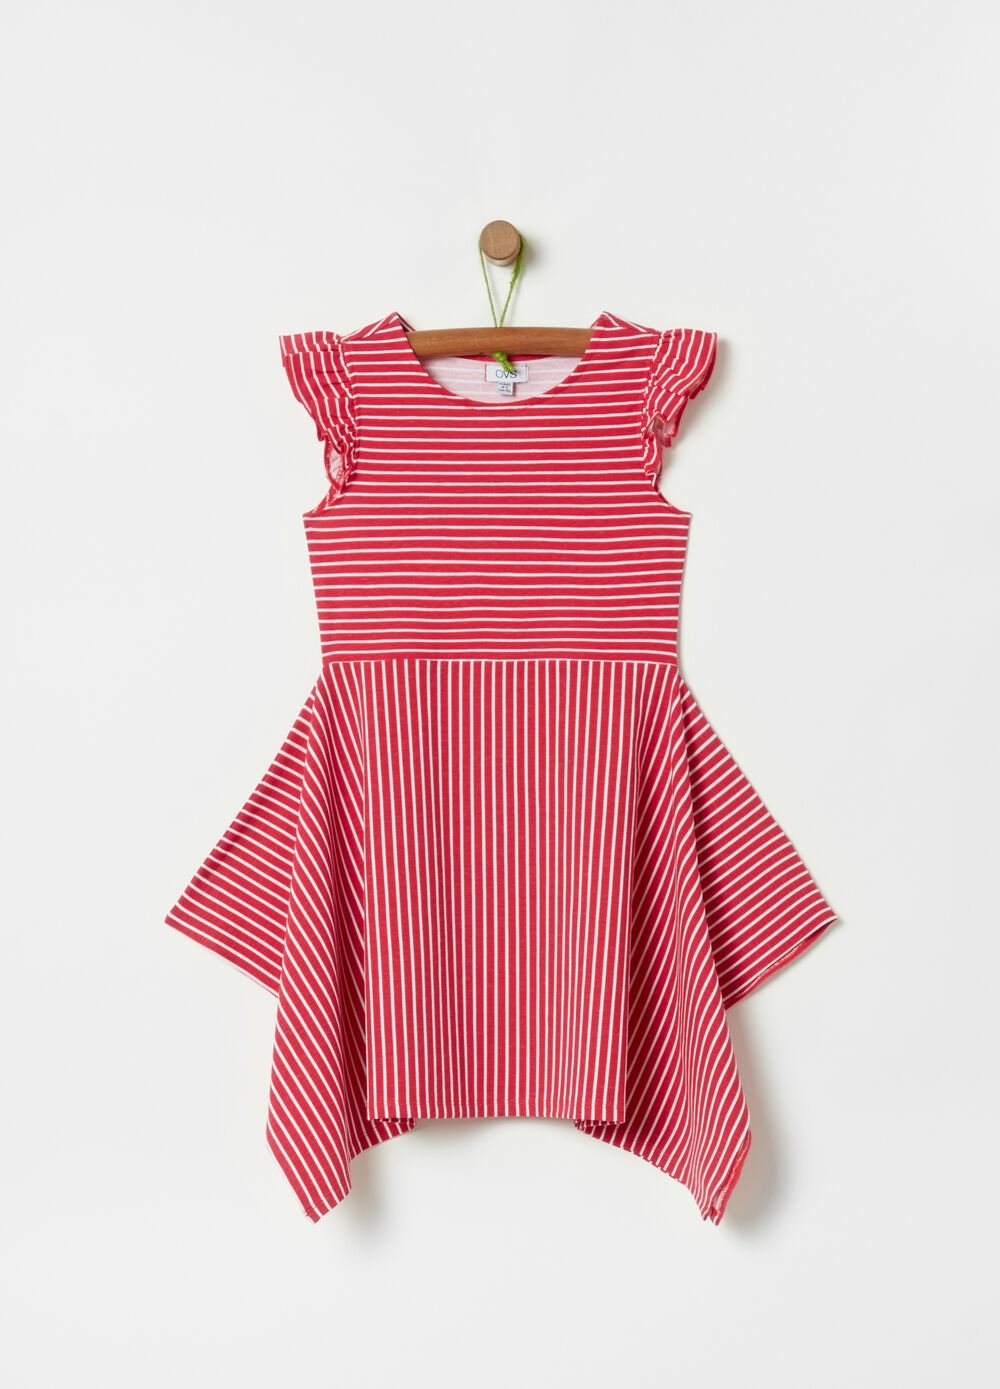 All-over striped print dress